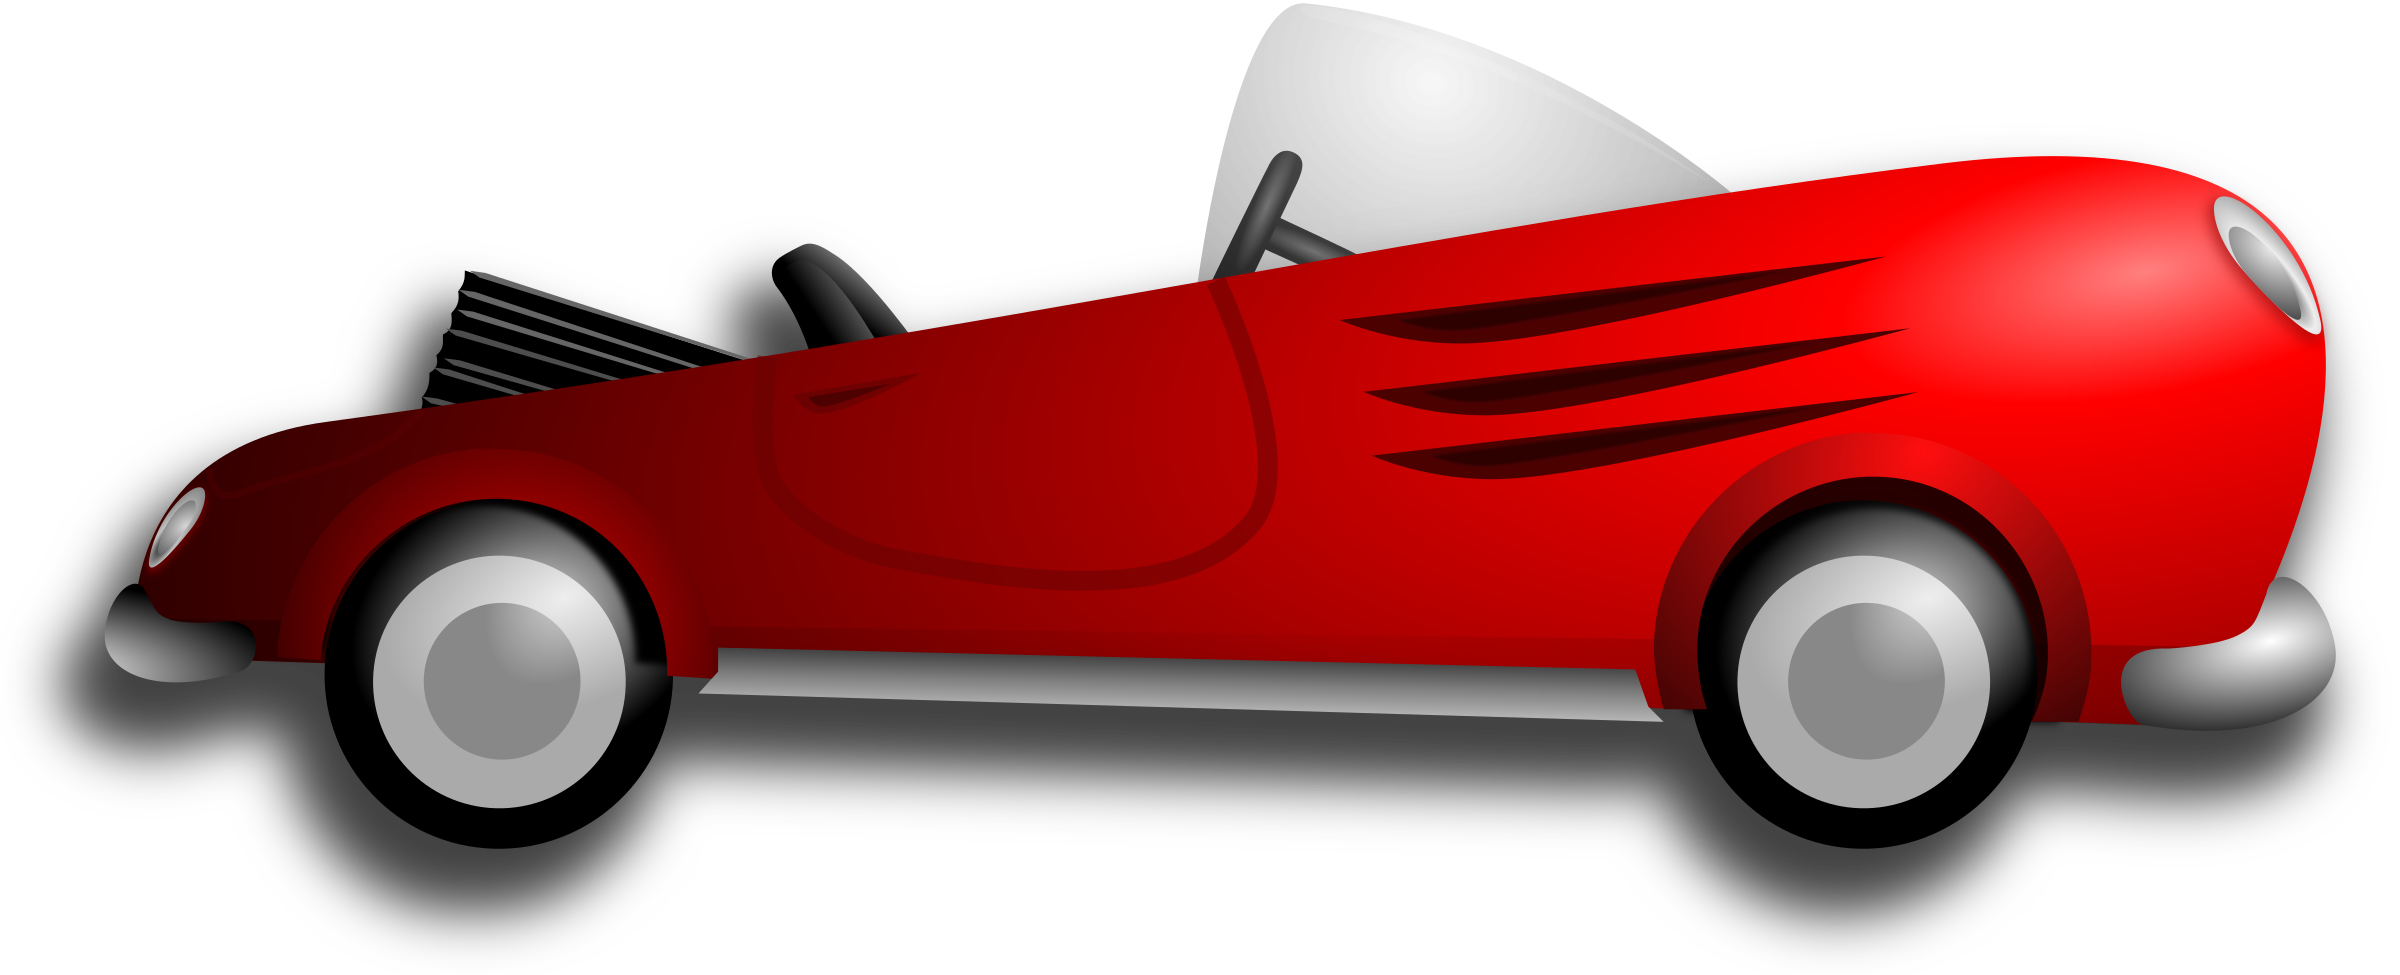 Red classic car clipart graphic stock Clipart - Classic Retro Sport Car graphic stock